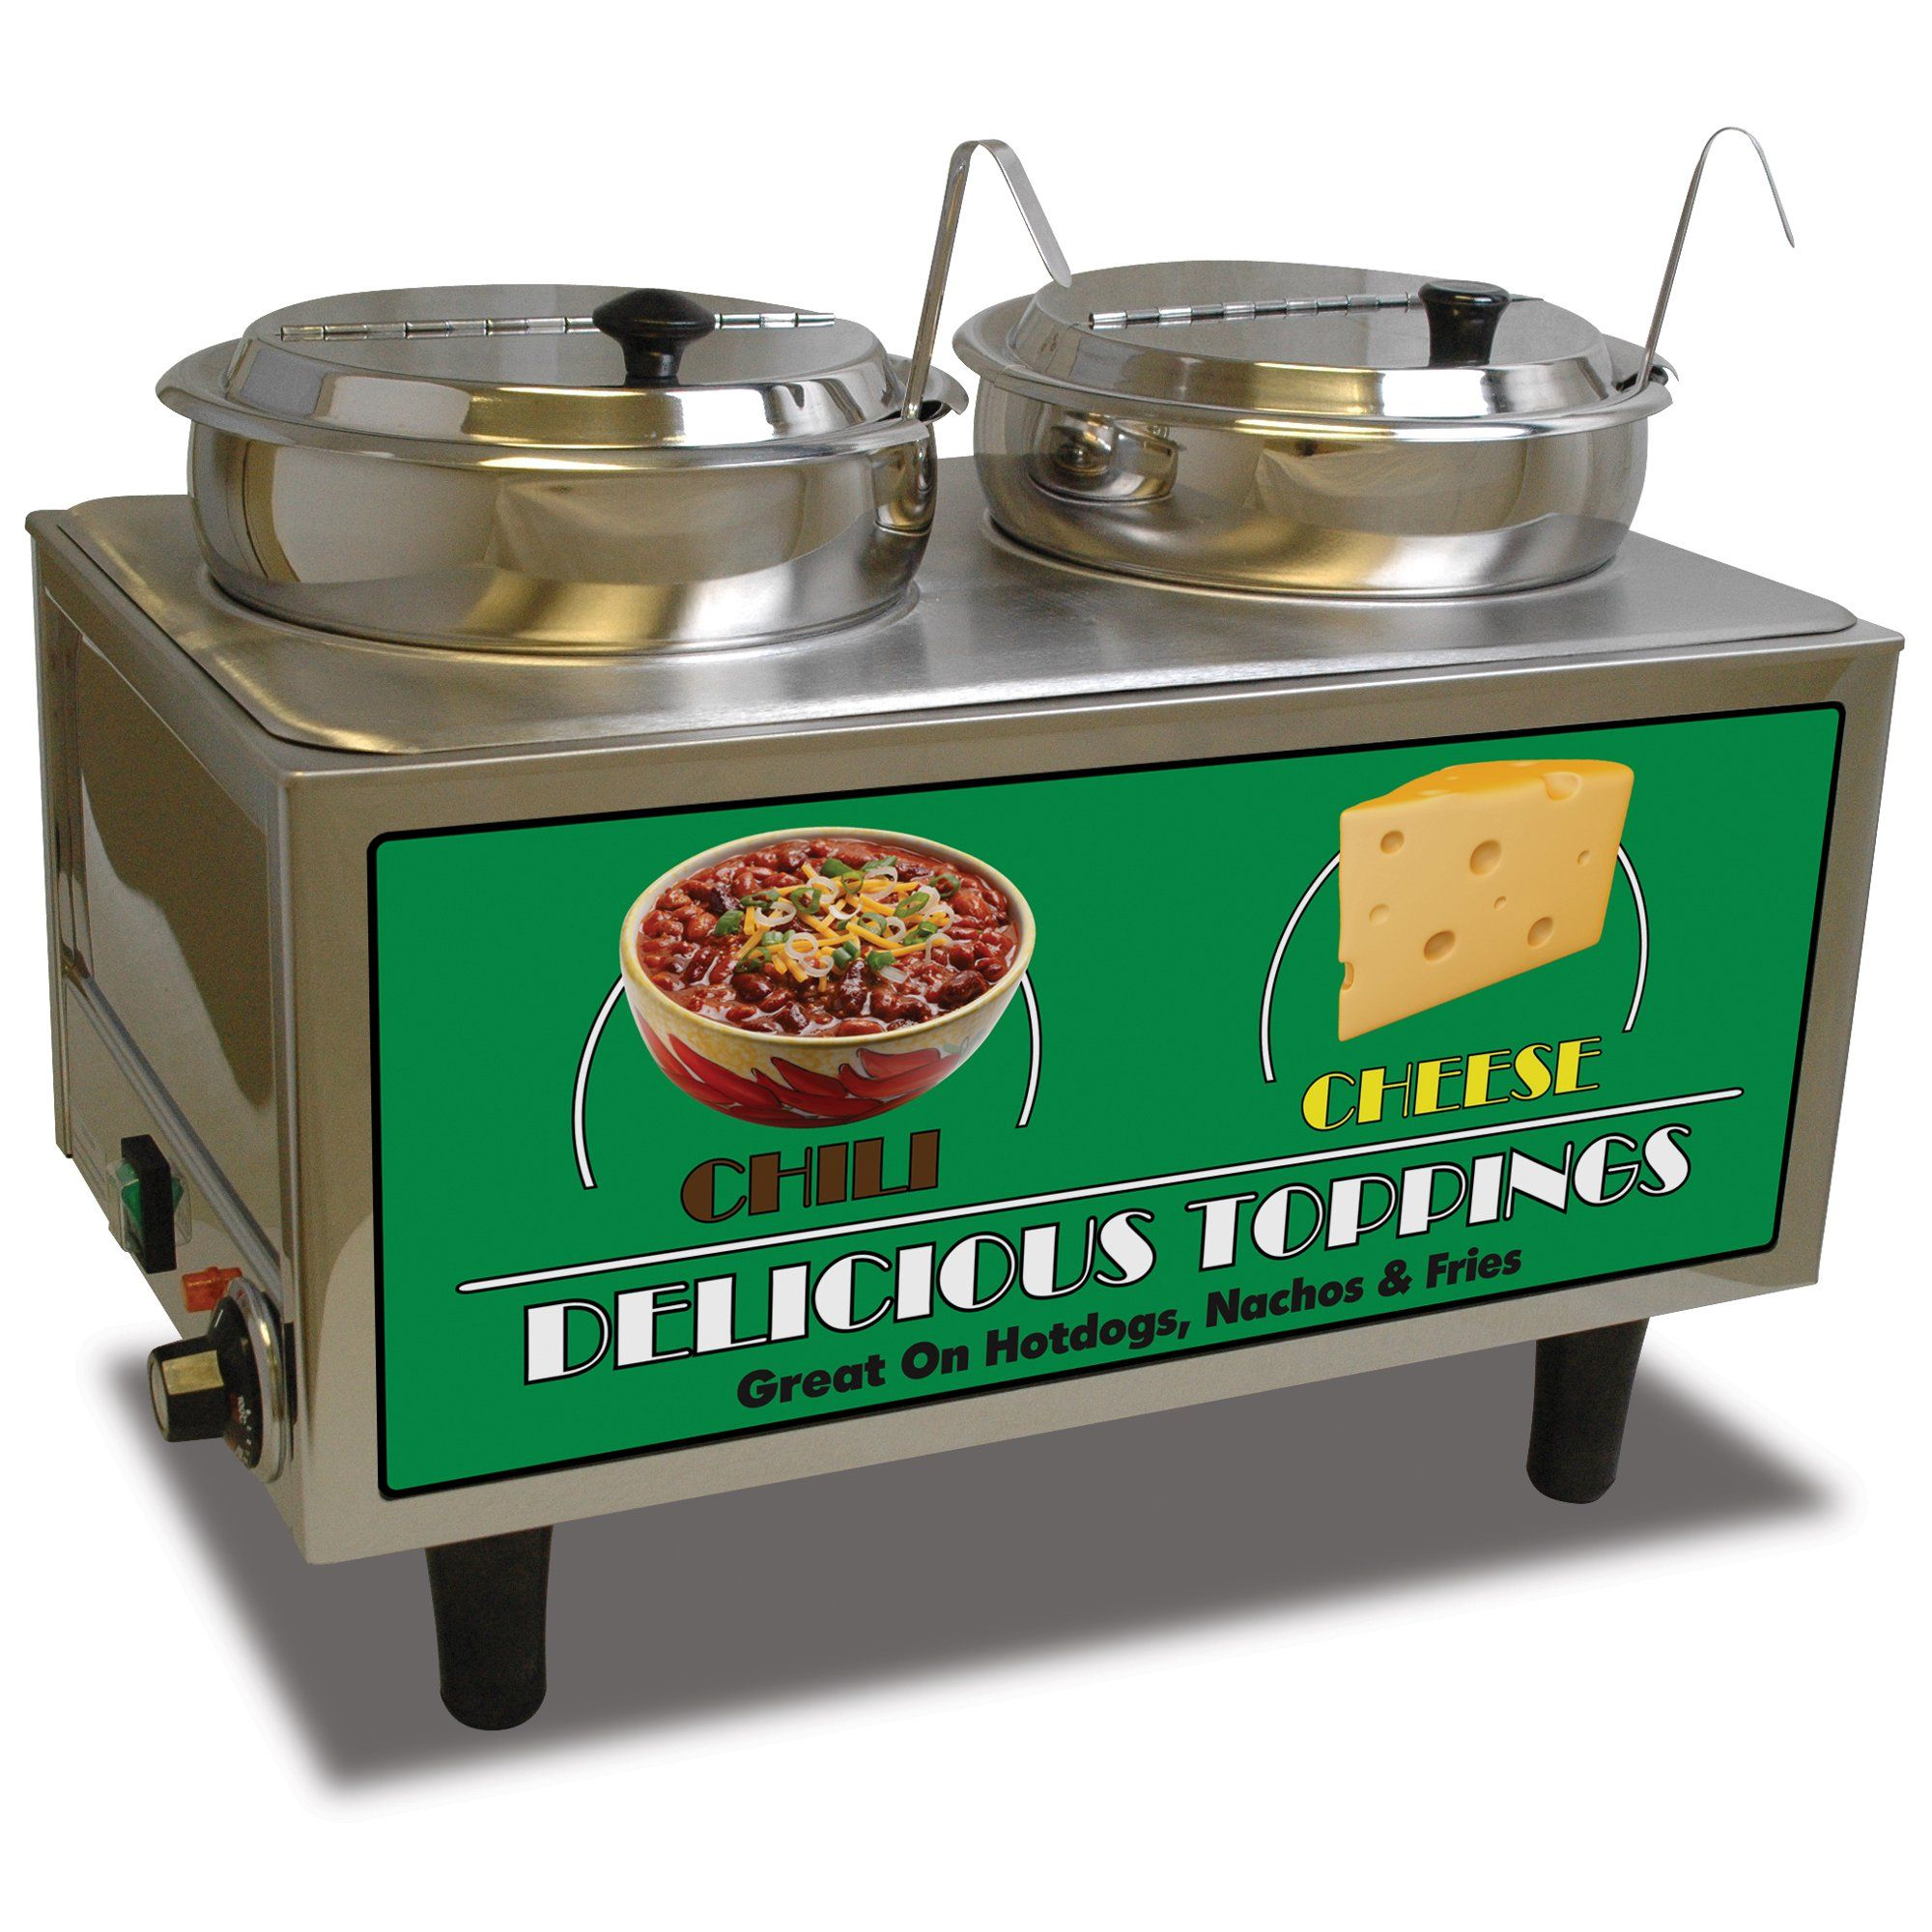 Chili cheese warmer with 2 ladles in 2020